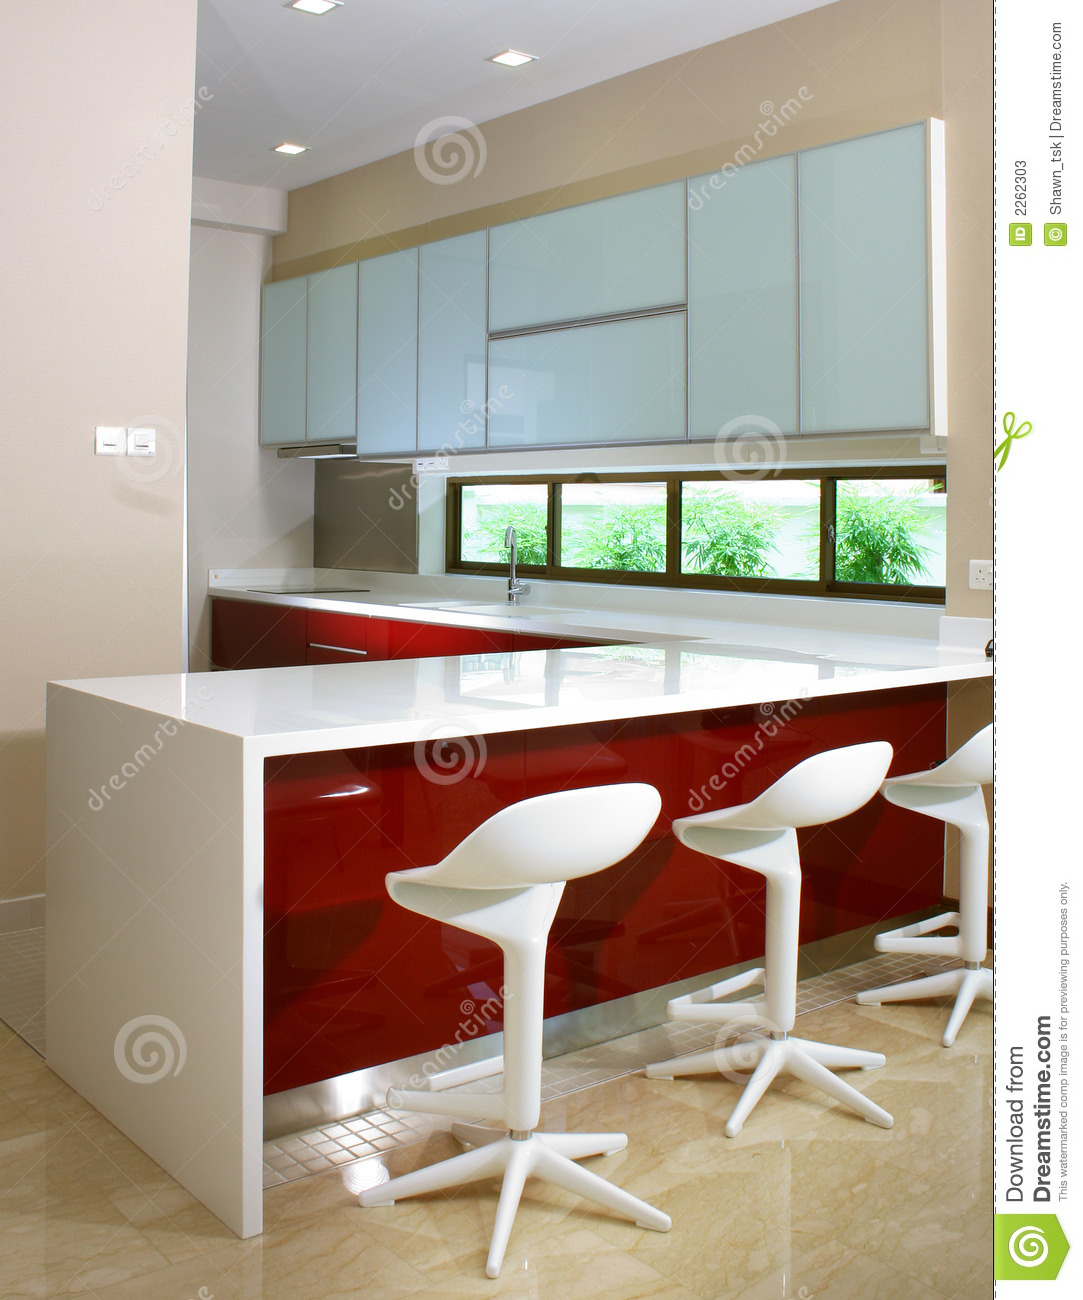 Kitchen and bar counter stock image. Image of gl, contemporary ... on kitchen design template, kitchen design ph, kitchen design ad, kitchen design wall, kitchen design bd, kitchen design clean, kitchen design pr, kitchen design ri, kitchen design pk, kitchen design li, kitchen design model, kitchen design nz, kitchen design mi, kitchen design ides, kitchen design nh, kitchen design za, kitchen design apl, kitchen design md, kitchen design uk, kitchen design nice,